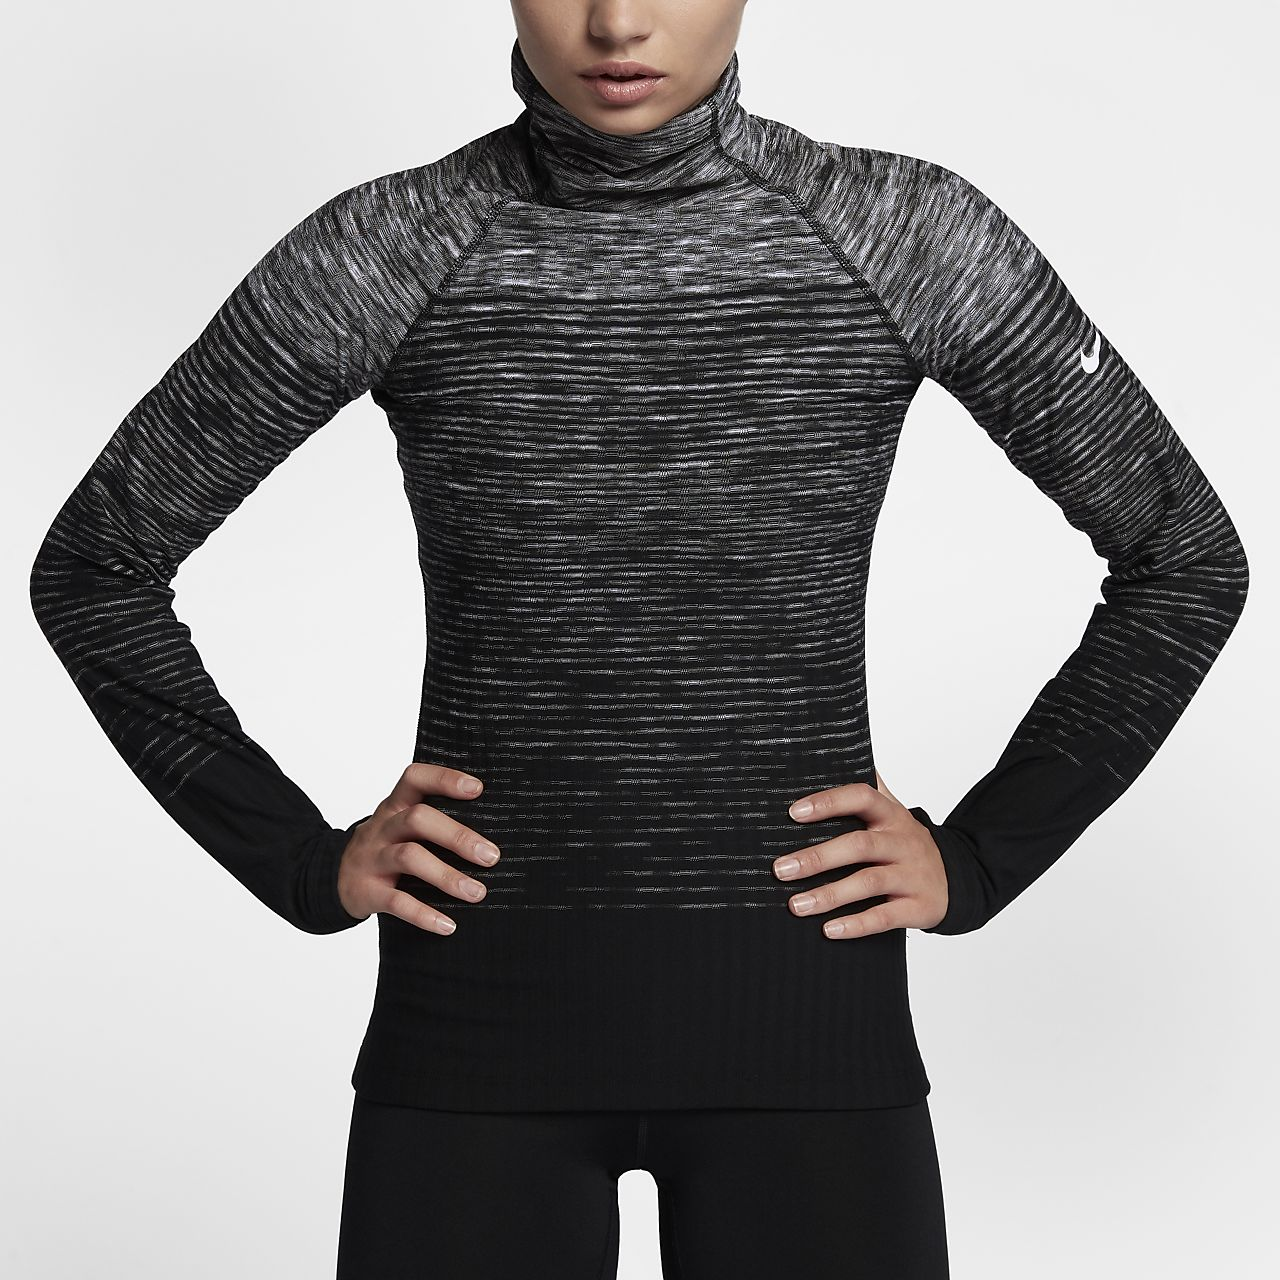 a193a6a9 Nike Pro HyperWarm Women's Long-Sleeve Training Top. Nike.com ID